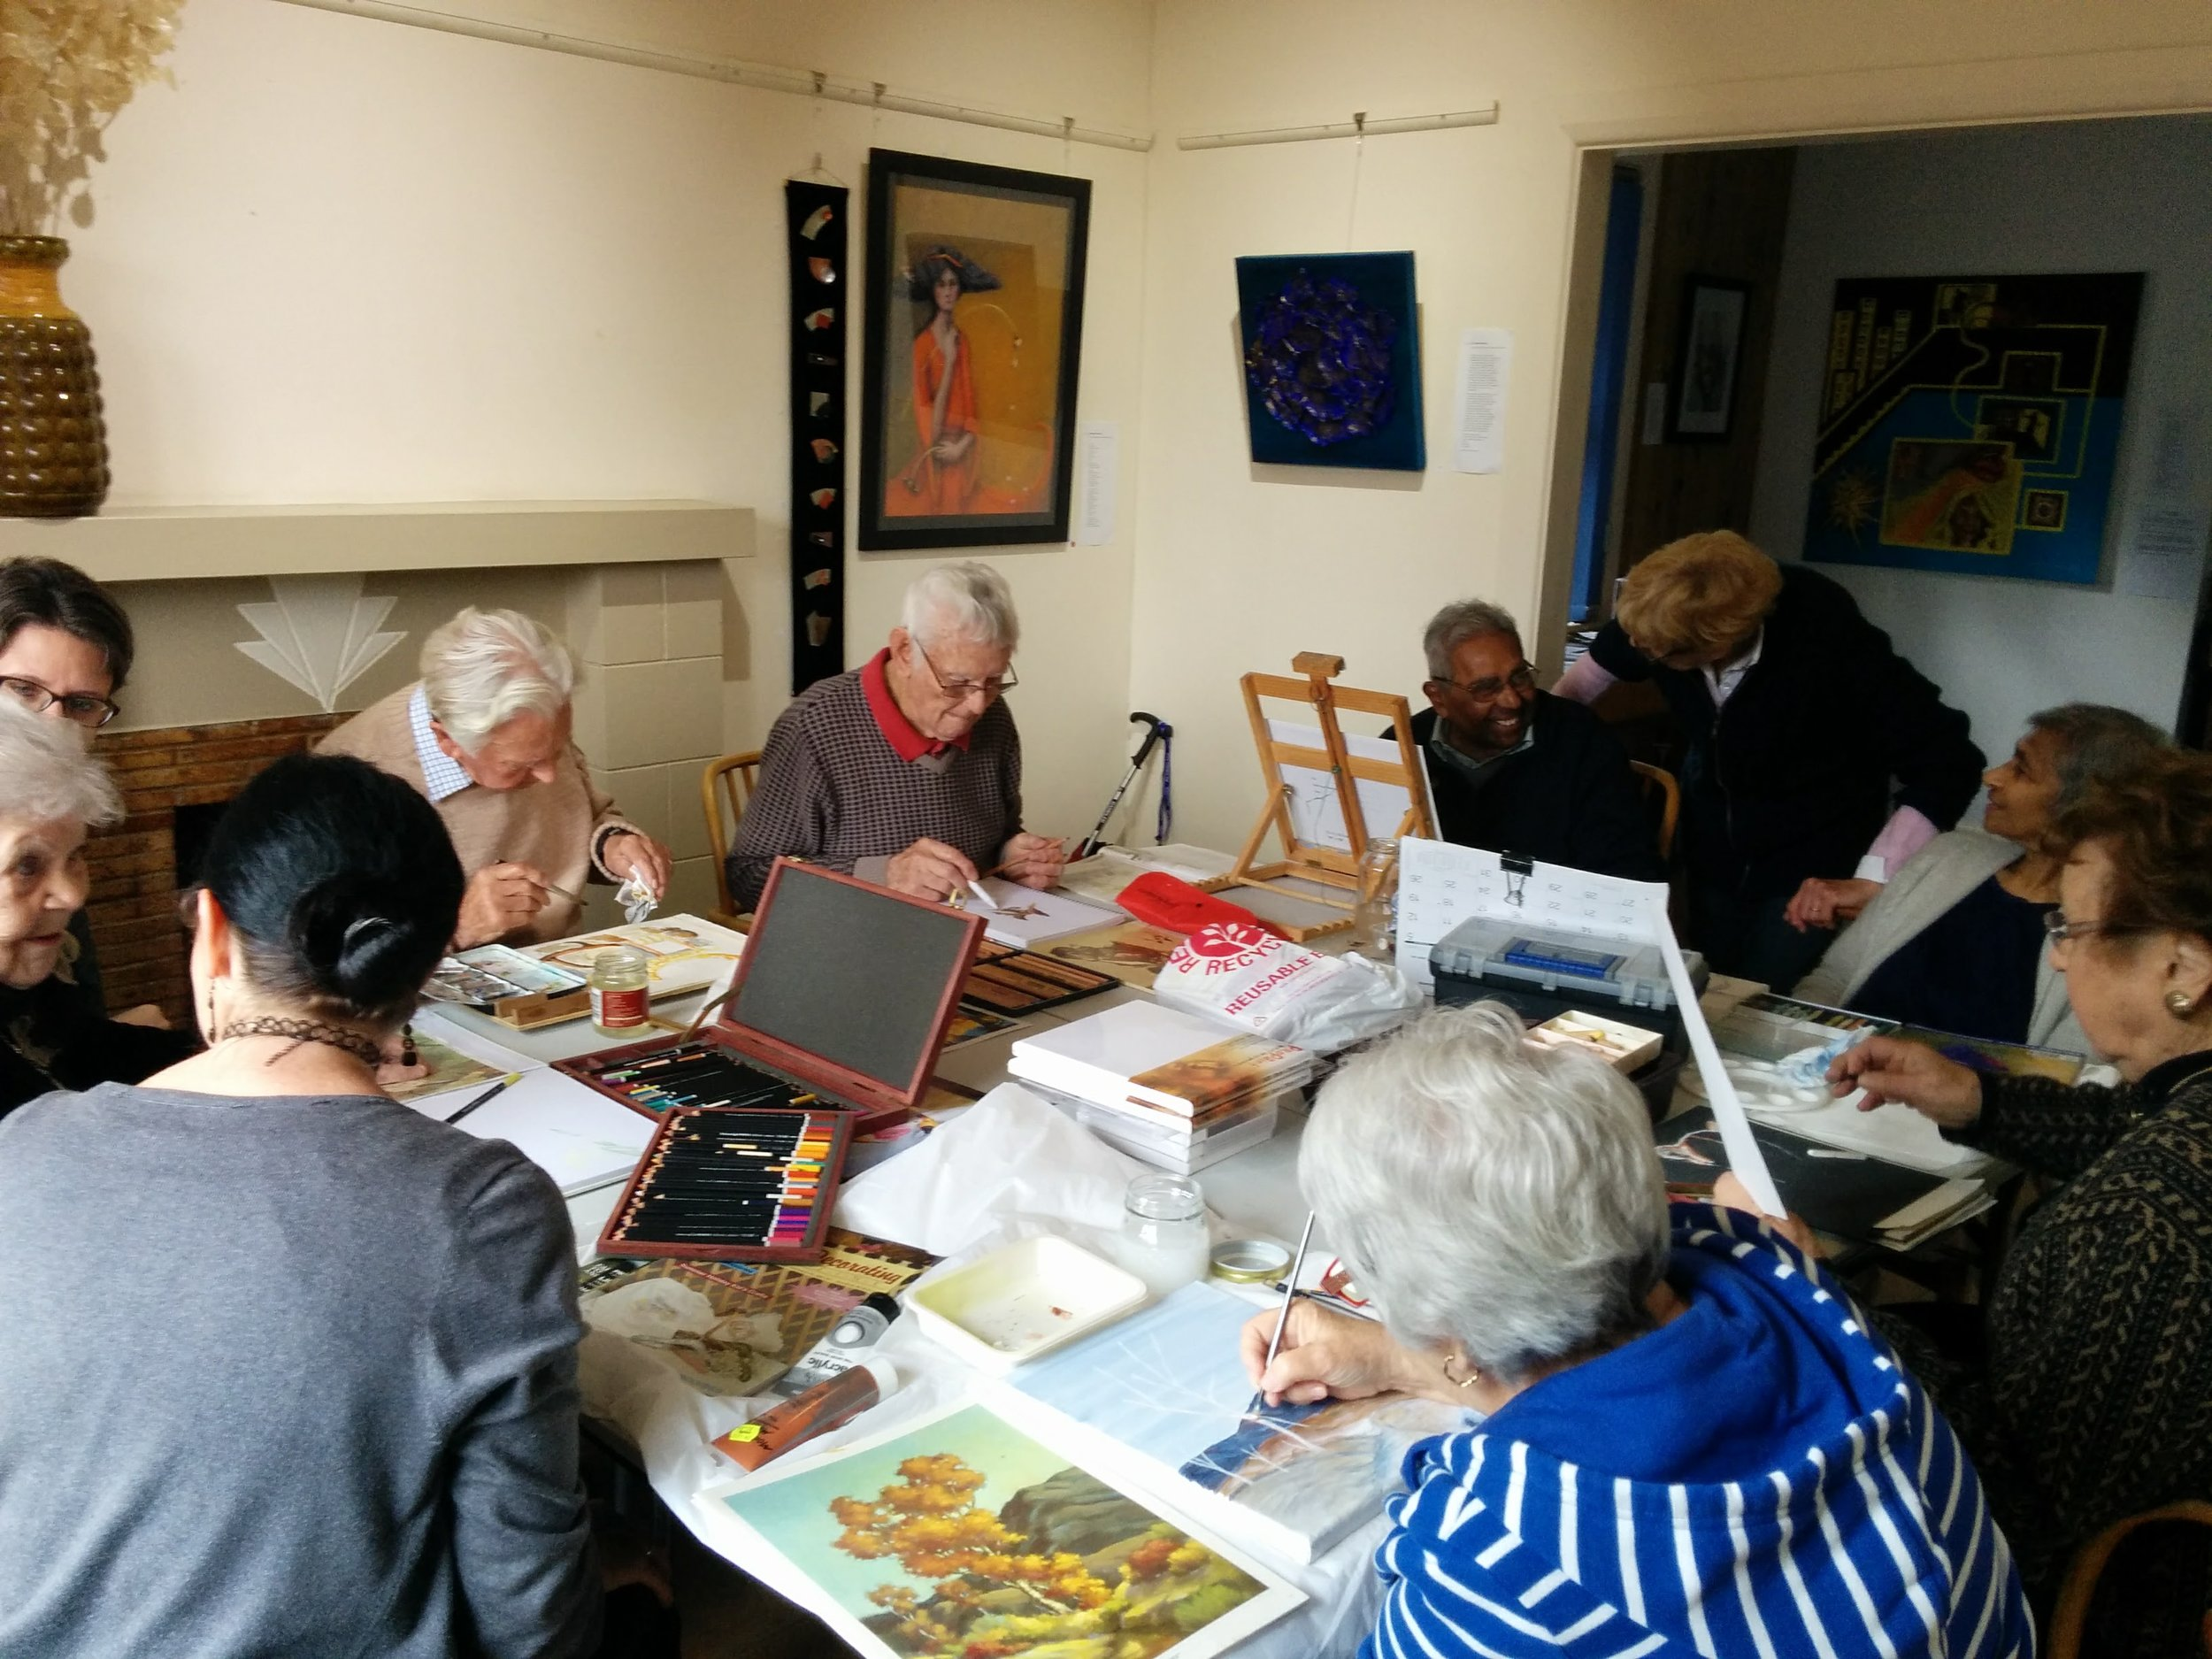 ACH art sessions - Every Wednesday10.00am - 12.00pmand12.30pm - 2.30pmsee below for contact details